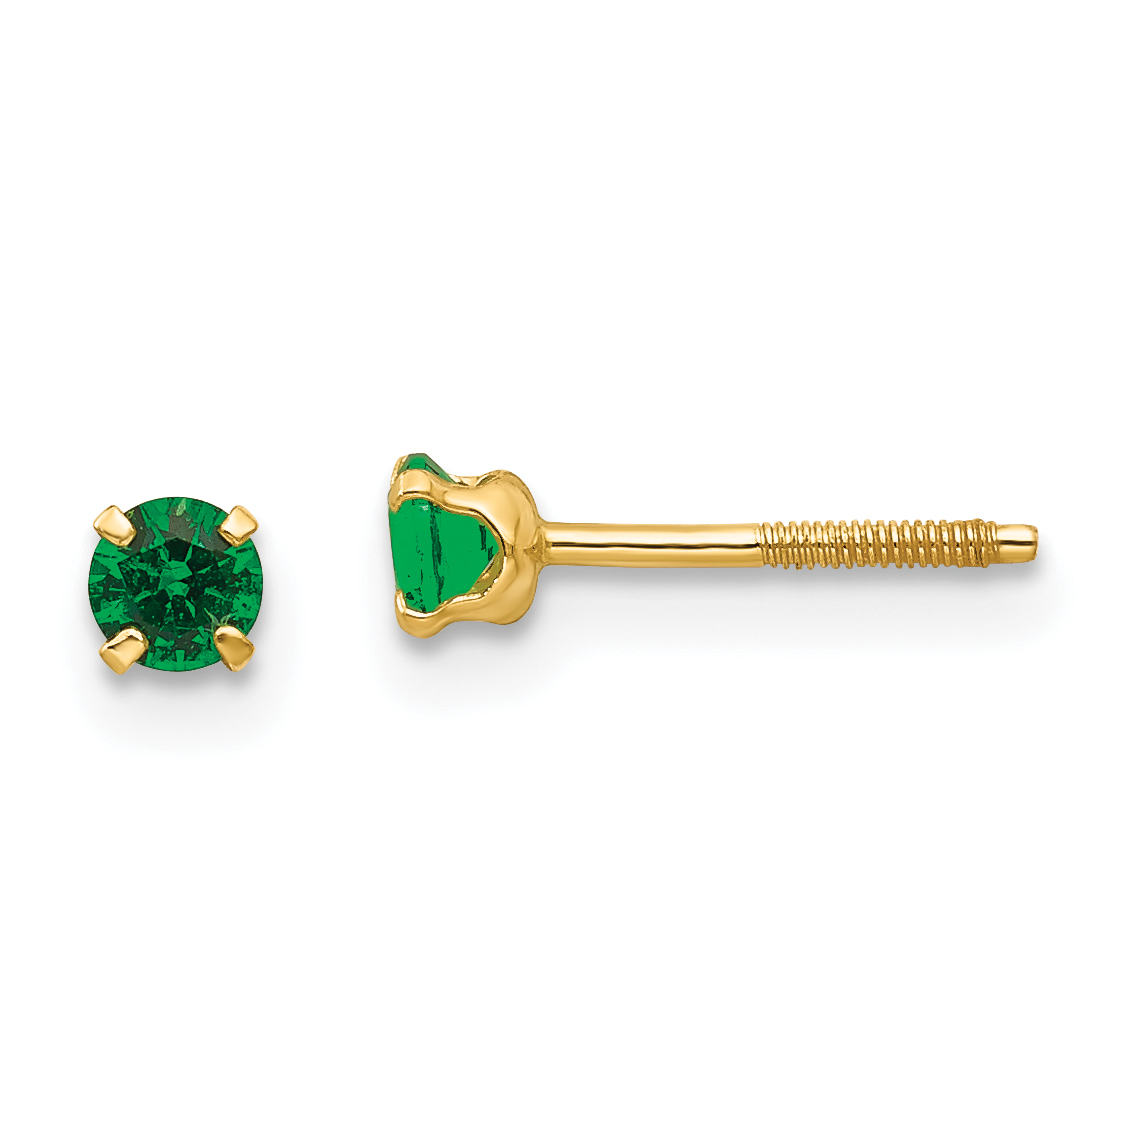 Image Is Loading 14k Madi K 3mm Synthetic Emerald Birthstone Earrings